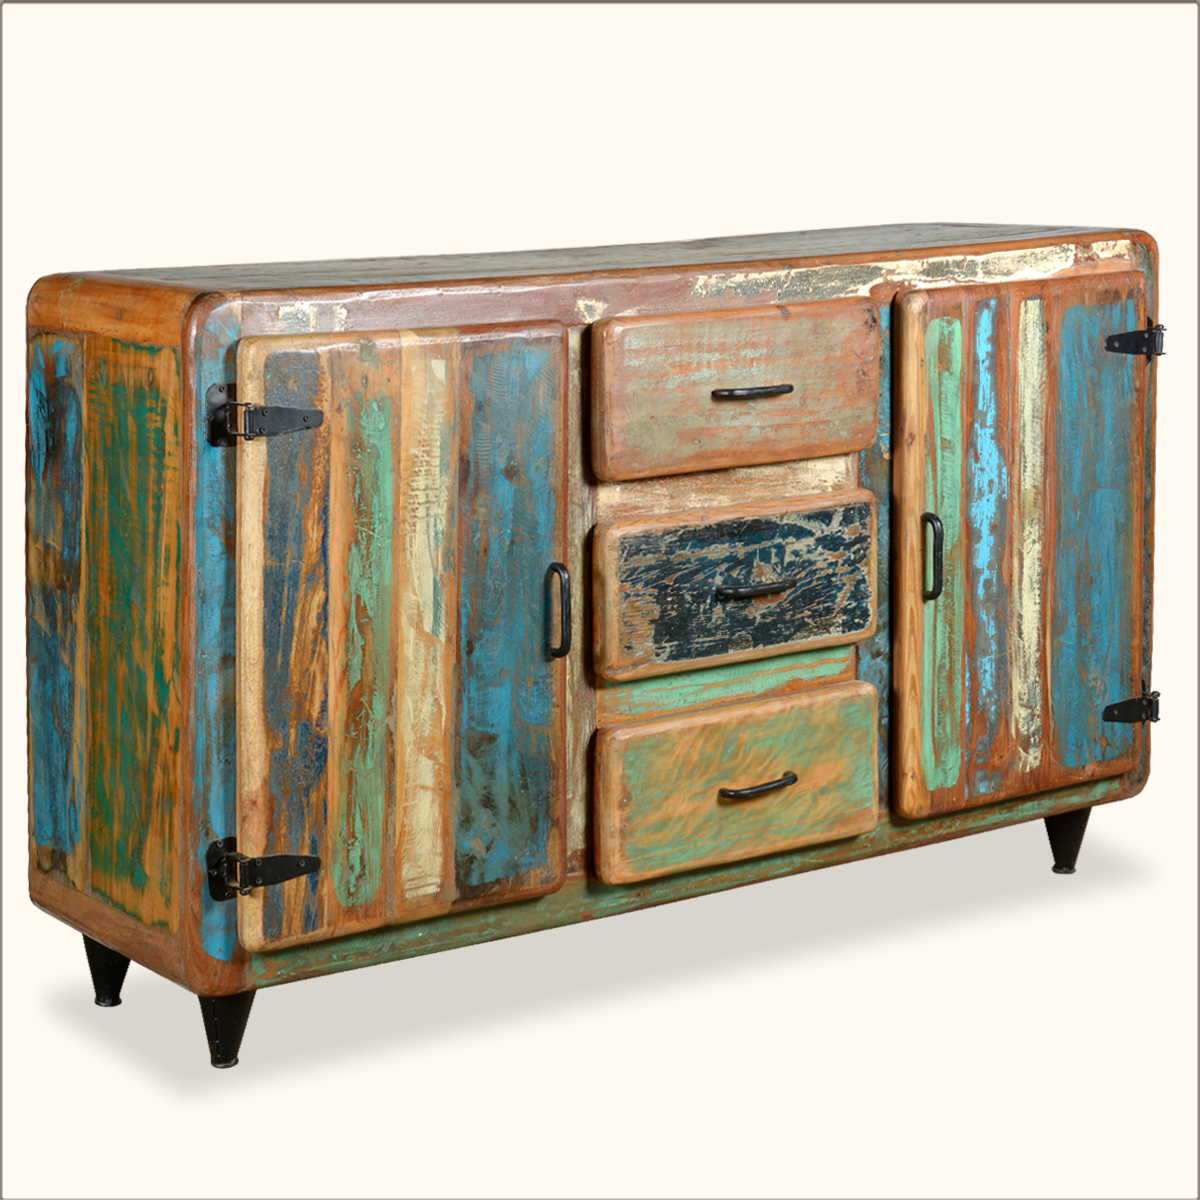 Retro reclaimed wood distressed rustic storage cupboard